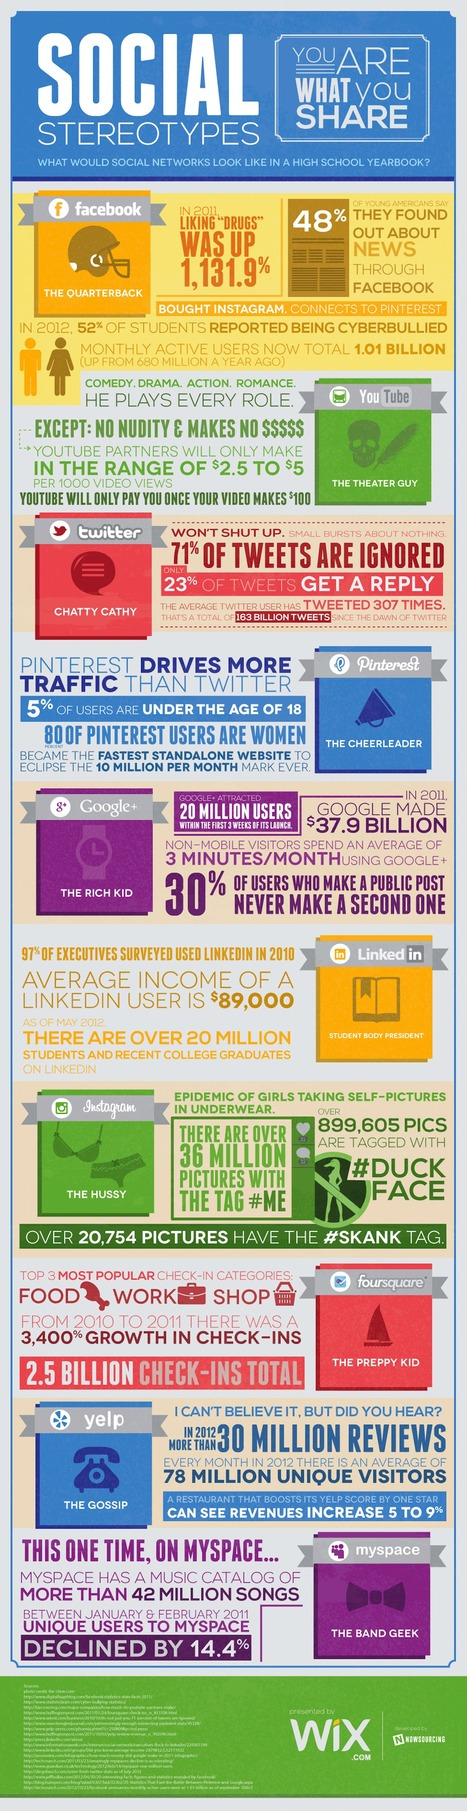 Social Stereotypes: Are You What You Share? [Infographic] | Infographics, Graphic Design & Heck Yeah! | Scoop.it